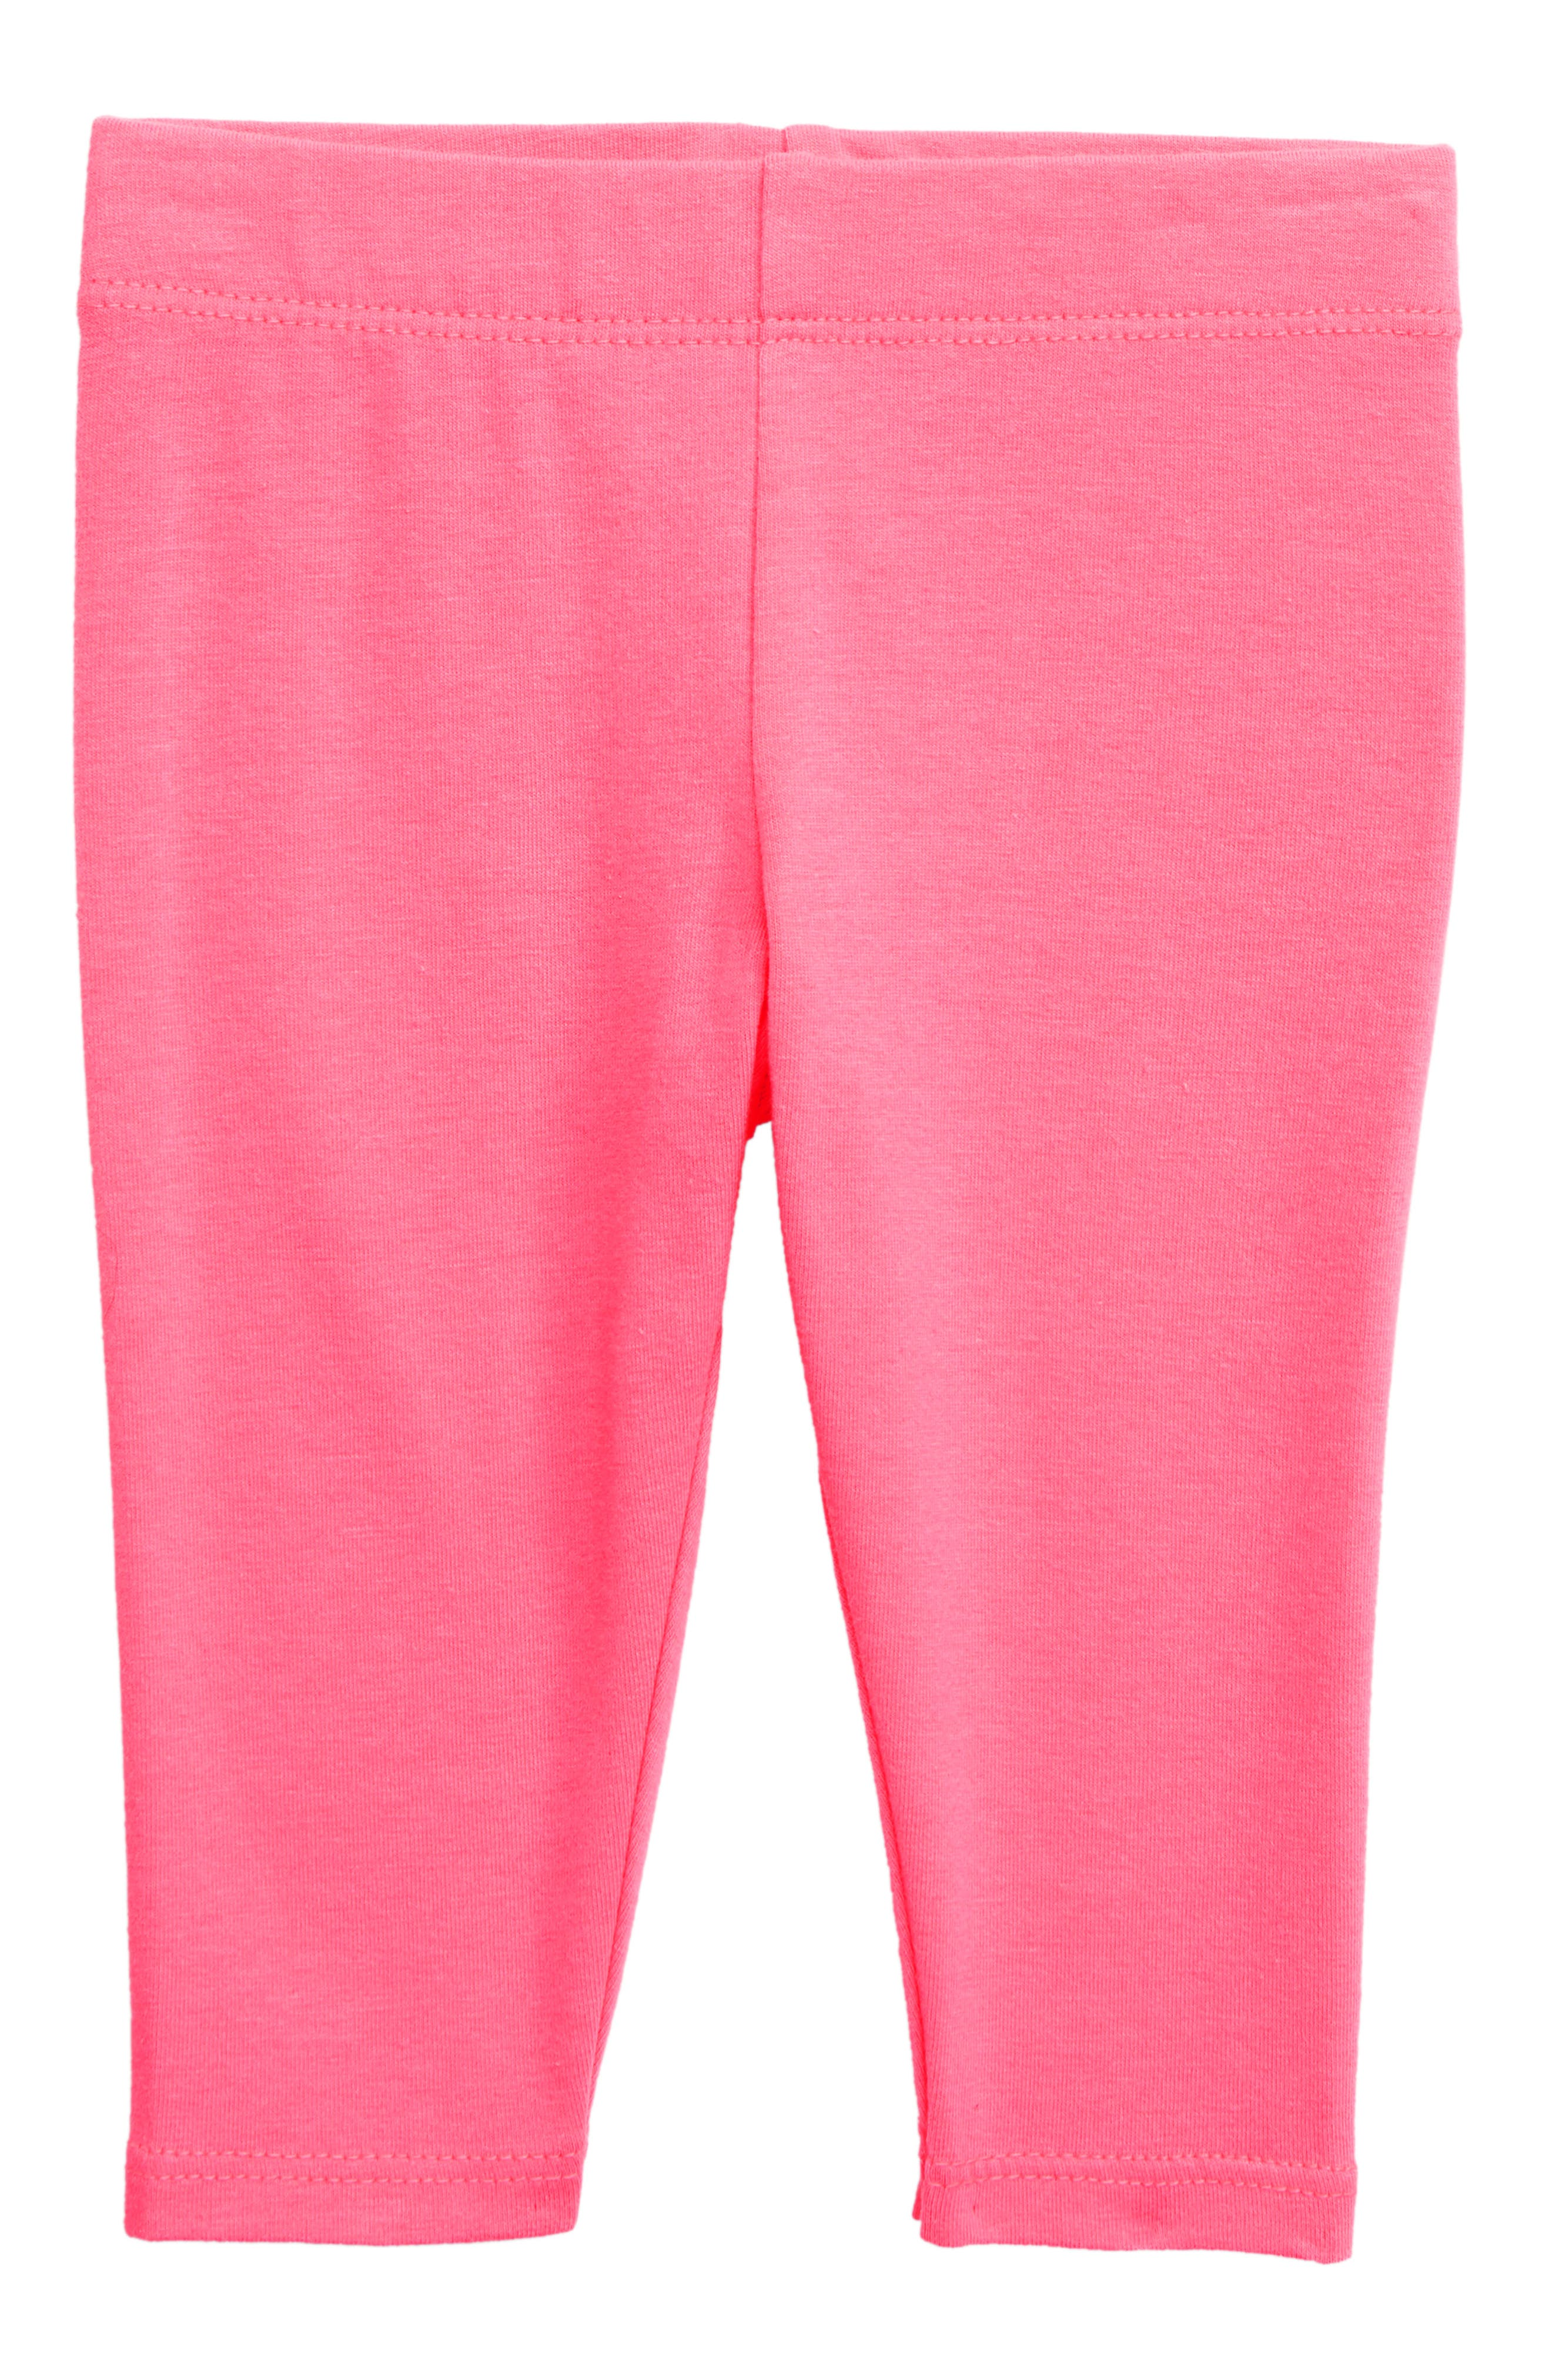 TUCKER + TATE Essential Leggings, Main, color, PINK KNOCKOUT